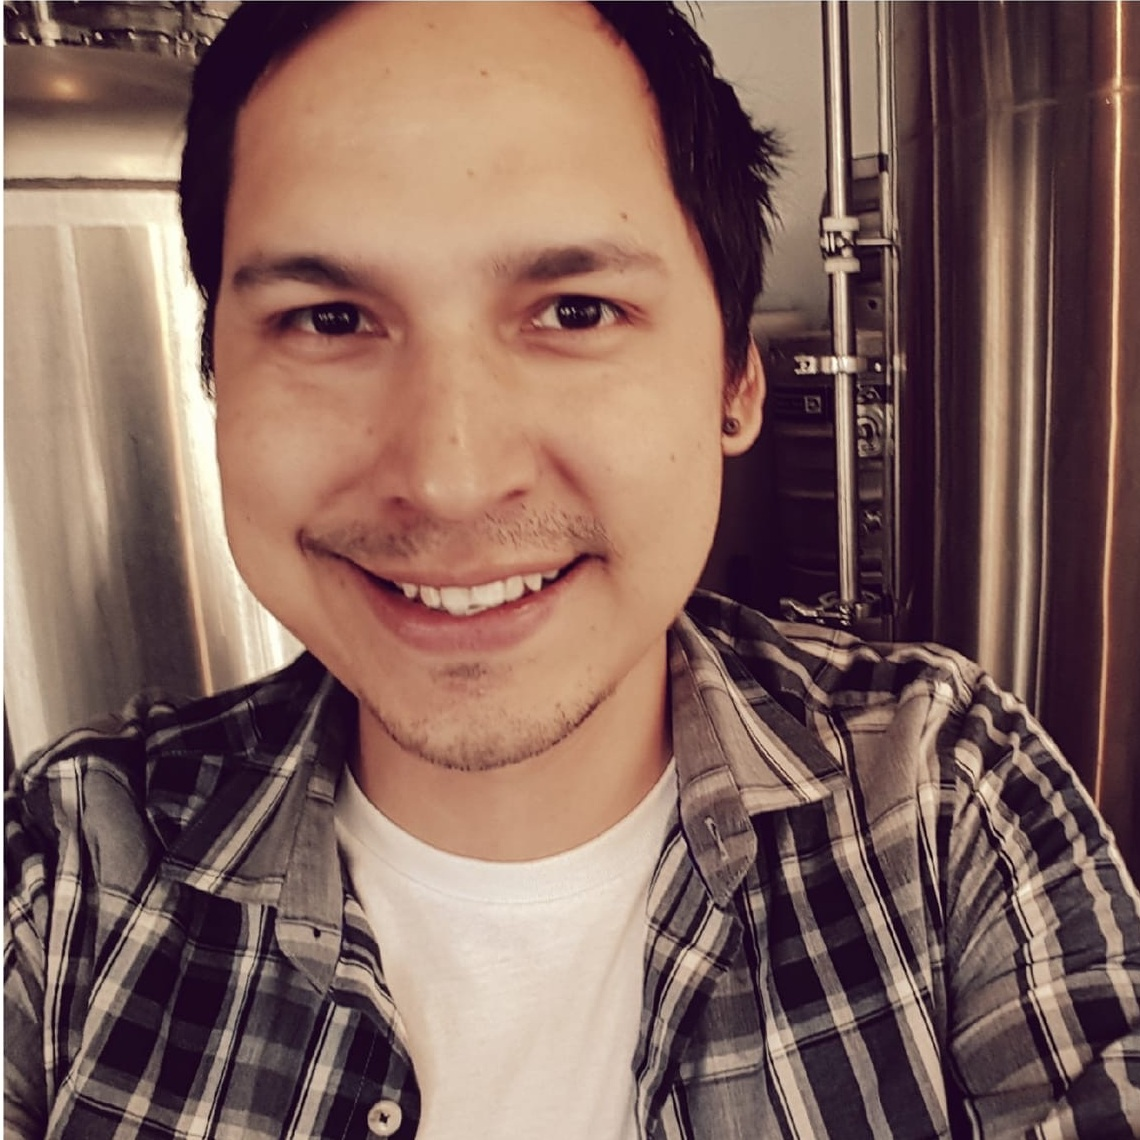 Rodney Contois - Rodney is the Director of Aki Foods and is a specialist in Indigenous food sovereignty. He is a member of the Misipawistik Cree Nation.